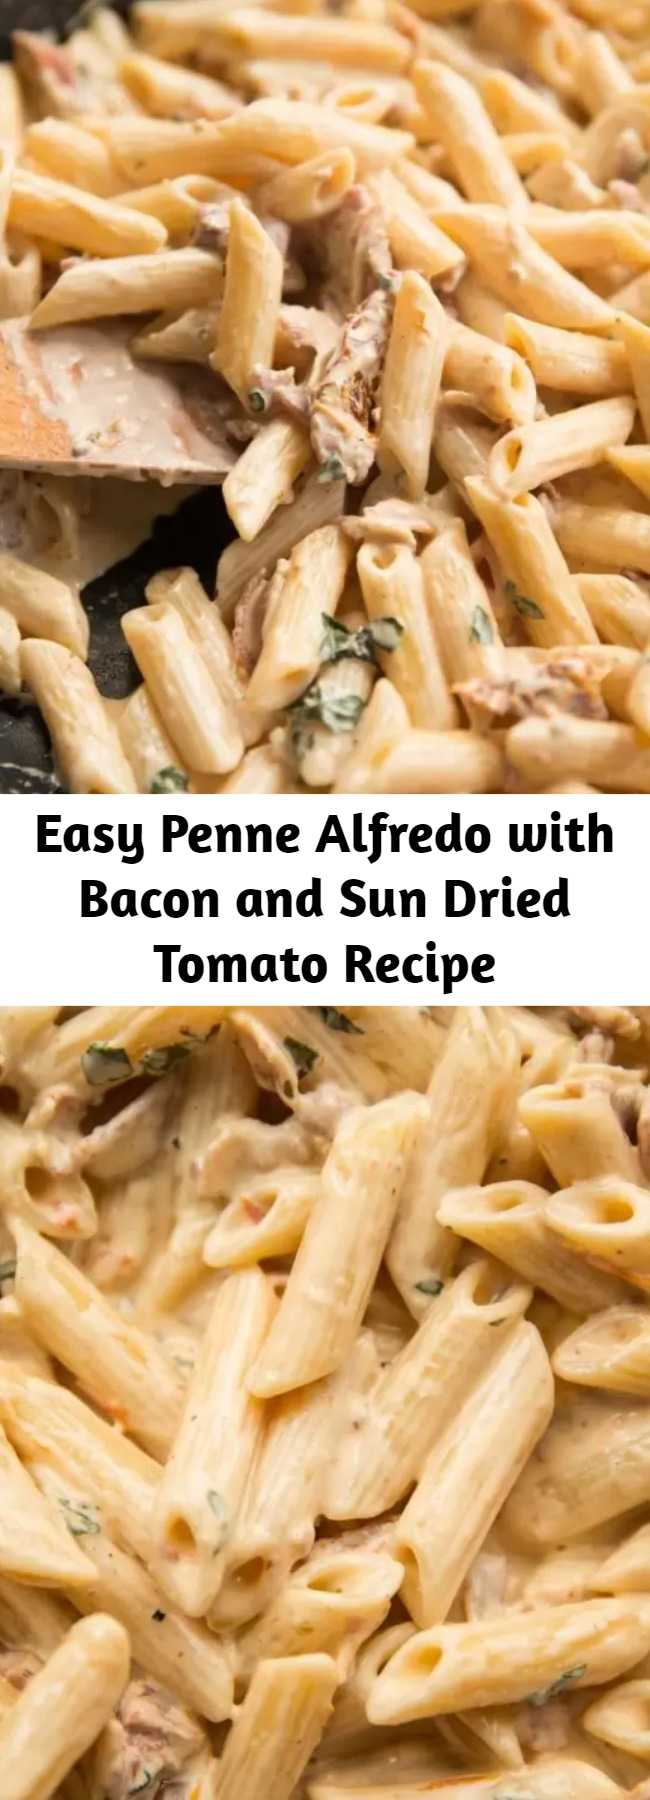 Easy Penne Alfredo with Bacon and Sun Dried Tomato Recipe - A delicious twist on the classic Alfredo. Penne Alfredo with Bacon and Sun Dried Tomato will change your 'go to' quick dinner forever. #bacon #penne #alfredo #pennealfredo #pasta #creamypasta